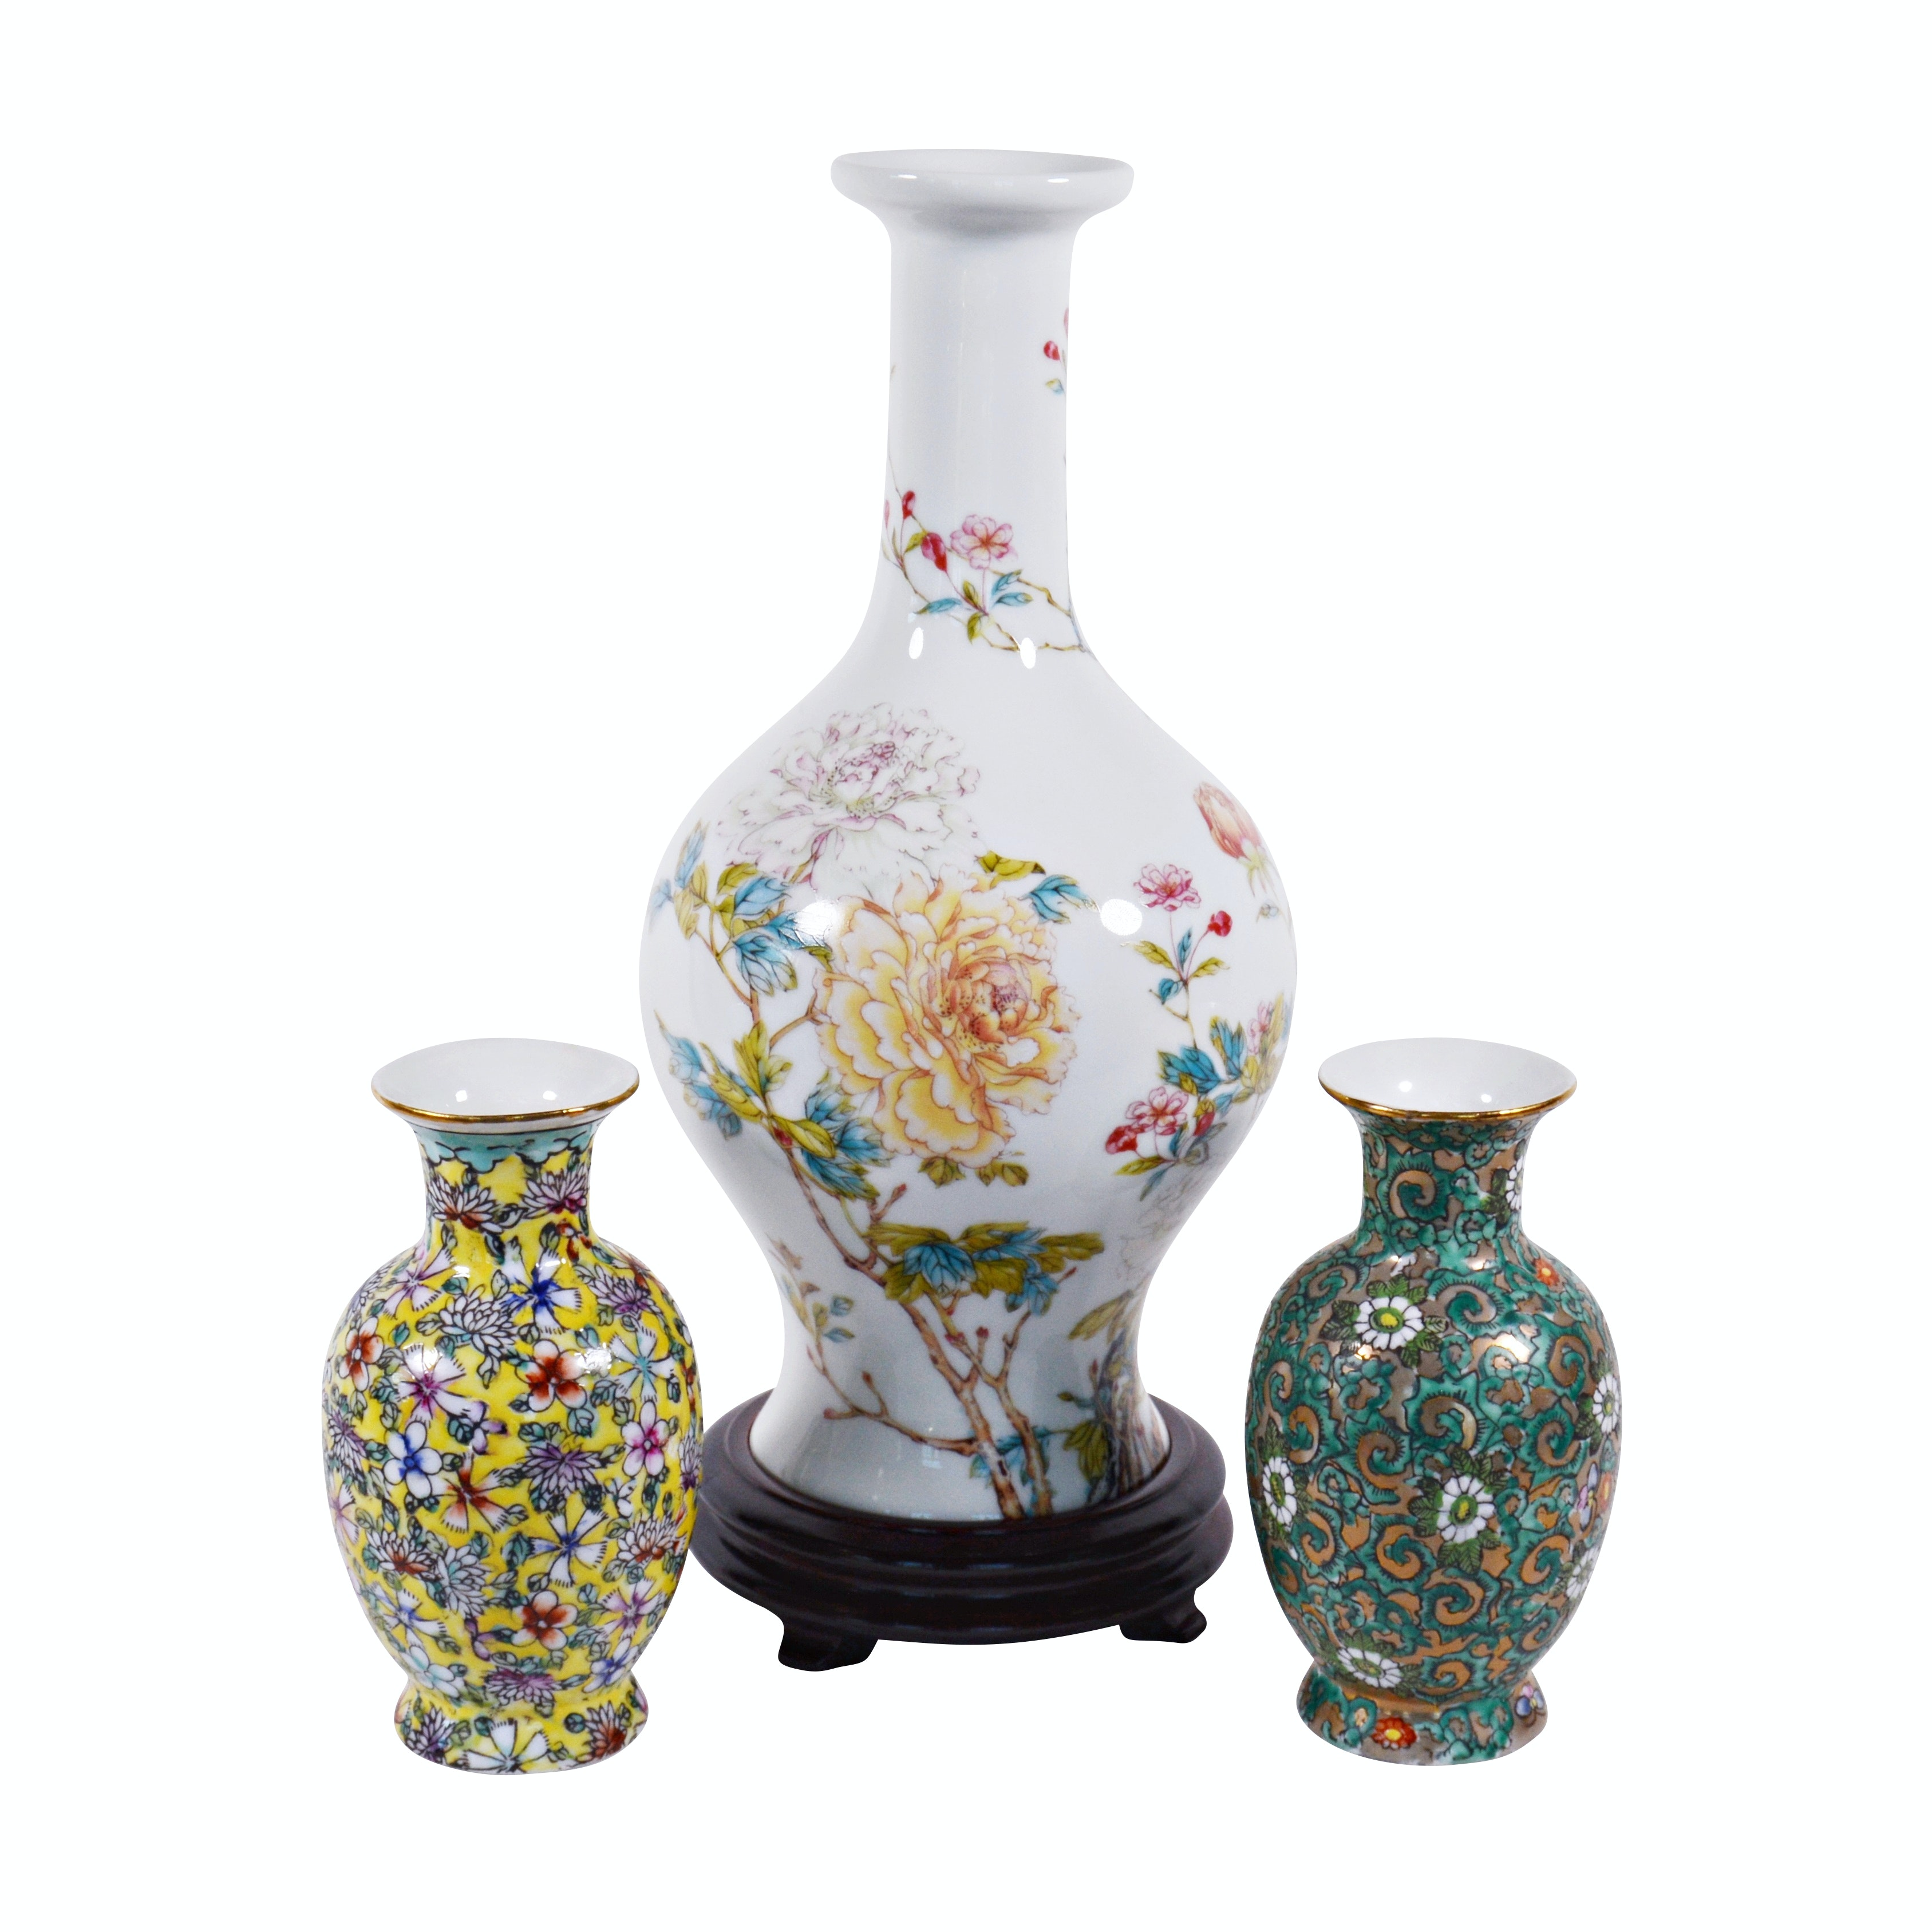 Lenox Porcelain Vase and Other Chinese Vases